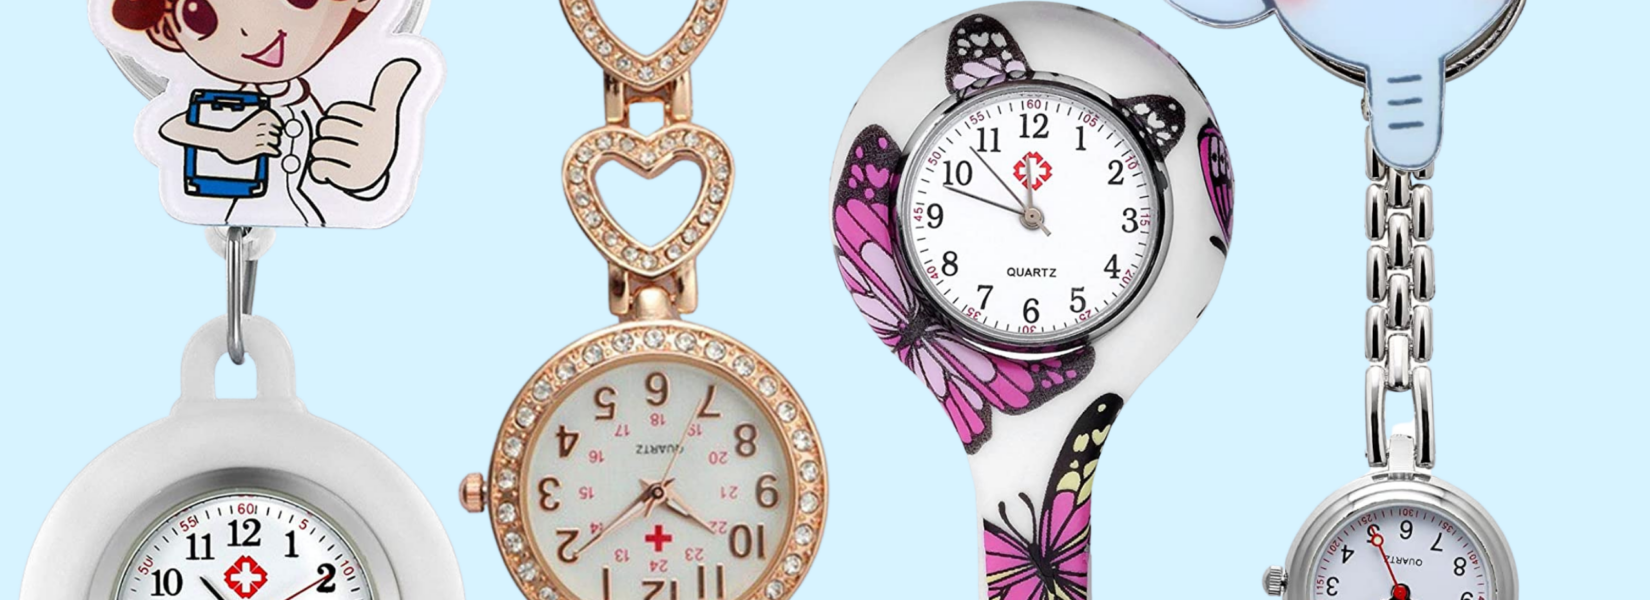 The Best Fob Watches For Nurses in the UK